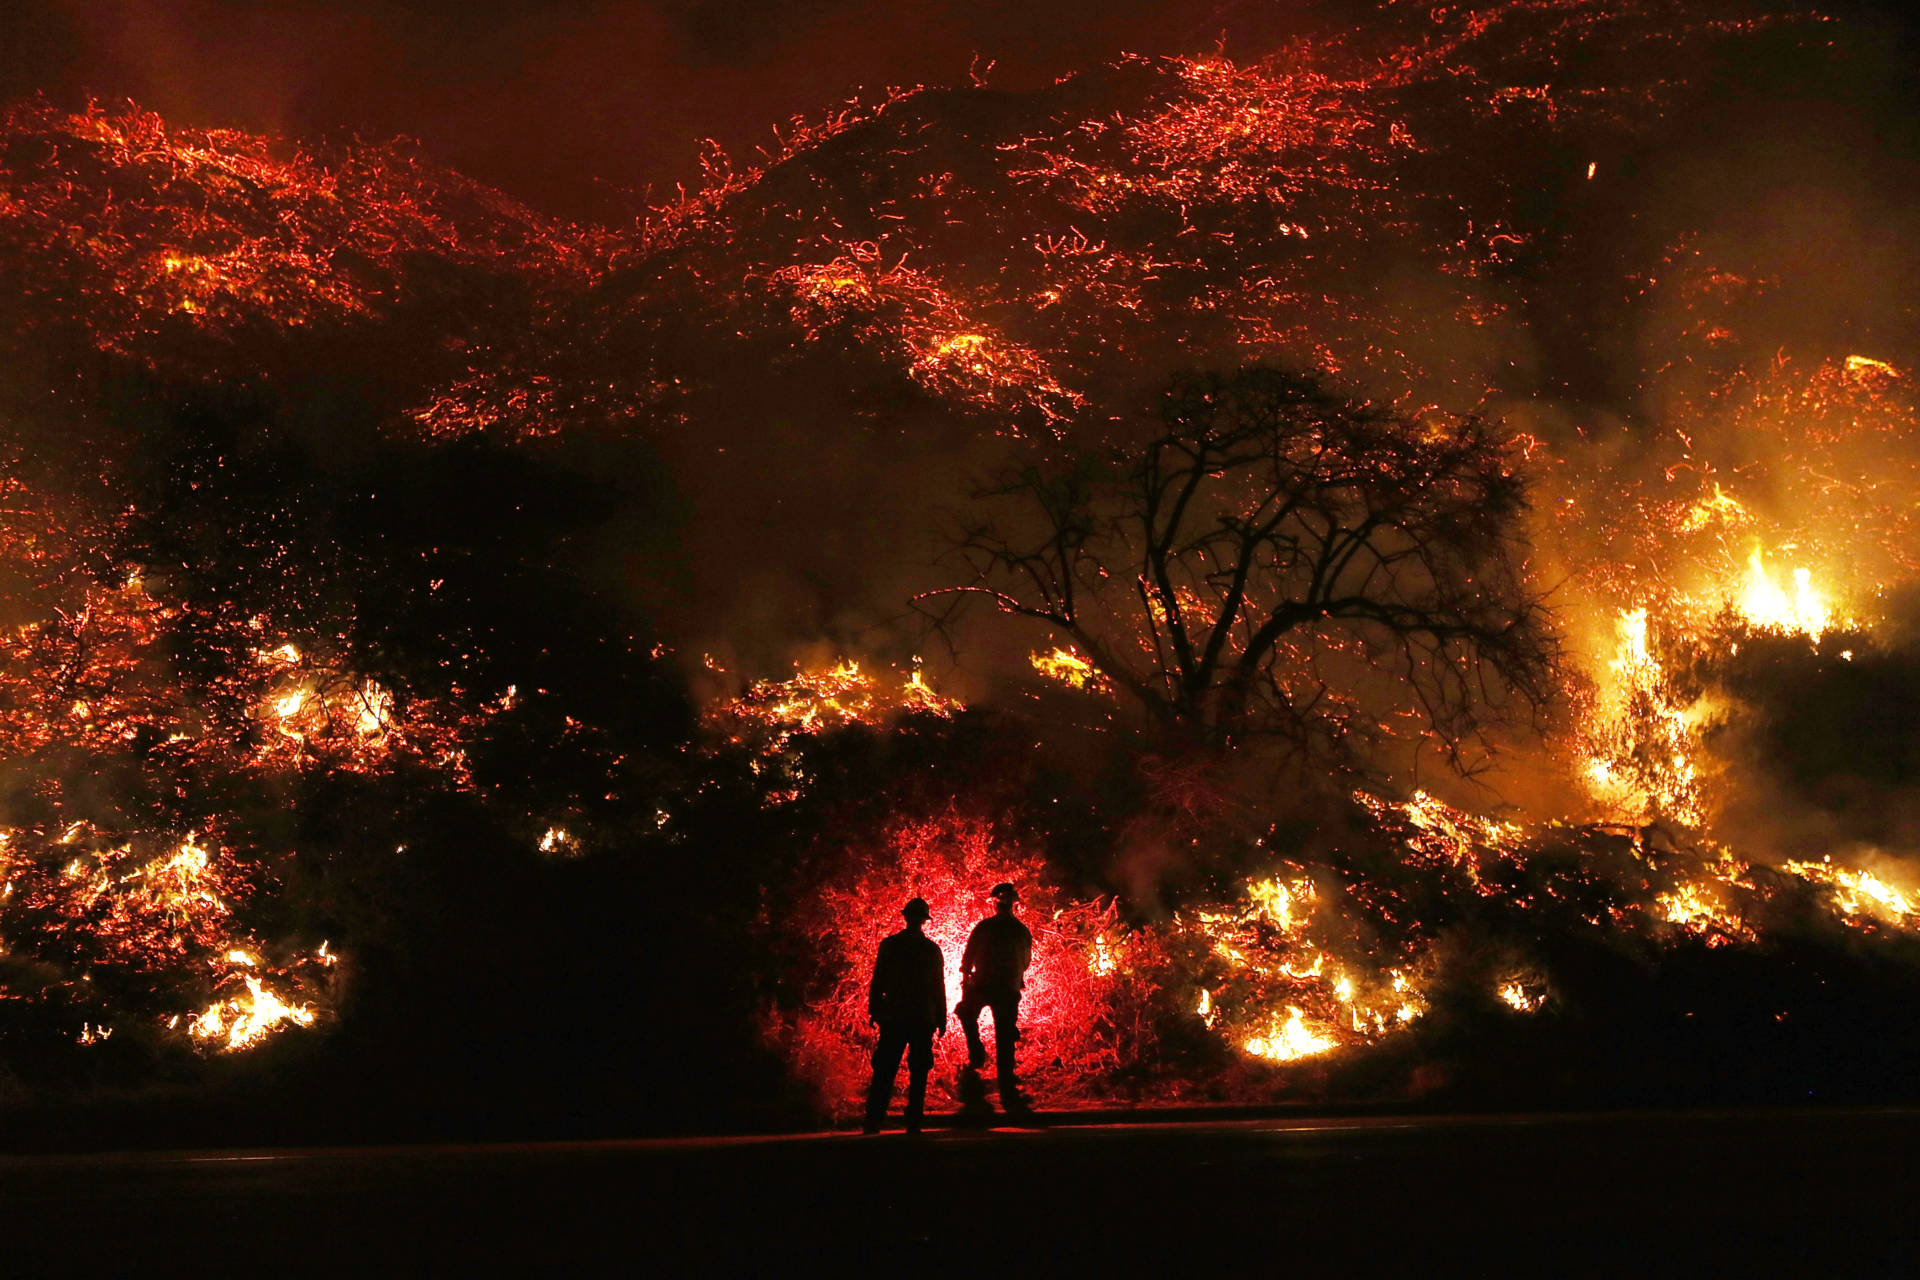 Firefighters monitor a section of the Thomas Fire along the 101 freeway on Dec. 7, 2017, north of Ventura. The firefighters occasionally used a flare device to burn off brush close to the roadside. Strong Santa Ana winds are rapidly pushing multiple wildfires across the region, expanding across tens of thousands of acres and destroying hundreds of homes and structures.  Mario Tama/Getty Images